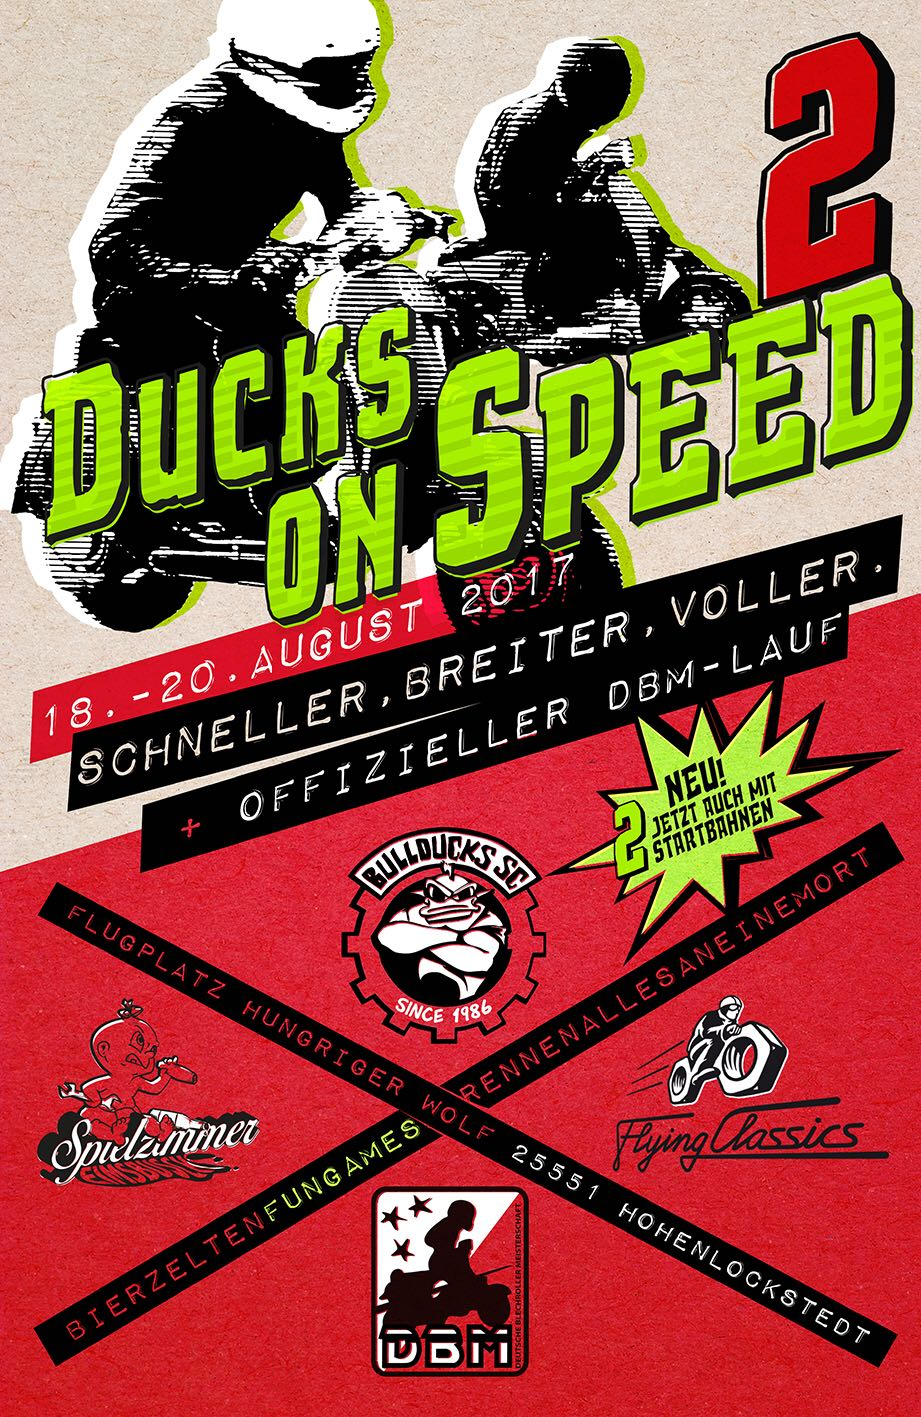 Flyer Ducks on Speed 2